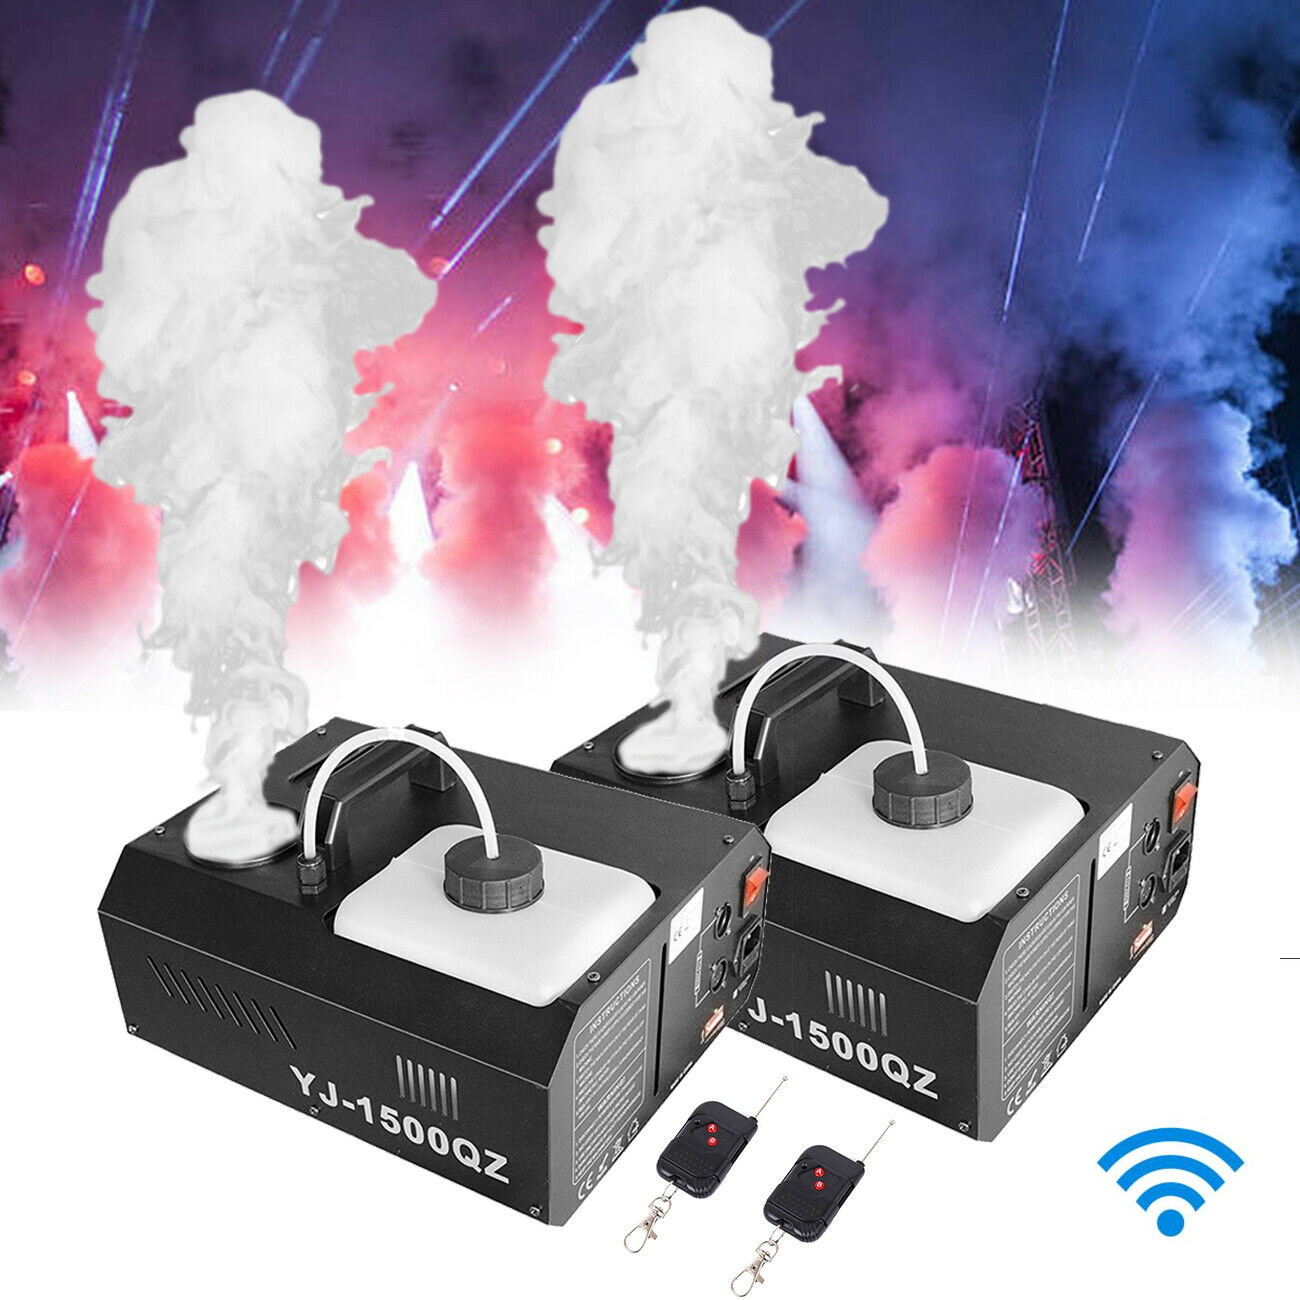 Honhill 1pcs Fog Smoke Machine DMX512 1500W Wireless Fogger Machine With Remote Control Upspray Fogger Stage Disco Fogger